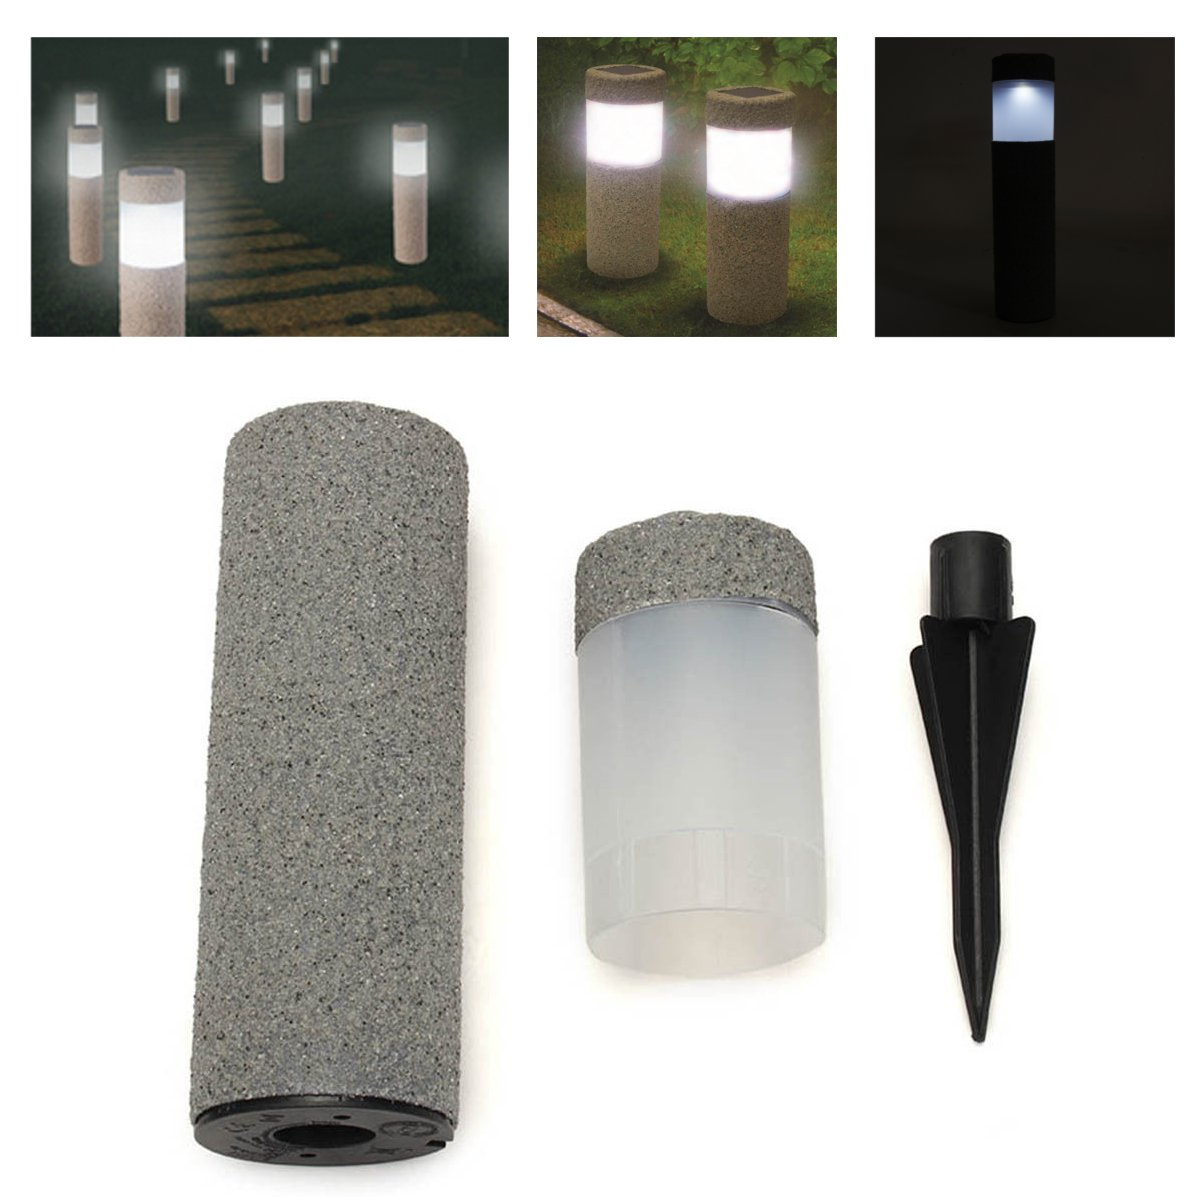 Waterproof Solar Light Power Stone Pillar LED Light Lamp Garden Lawn Courtyard Decor